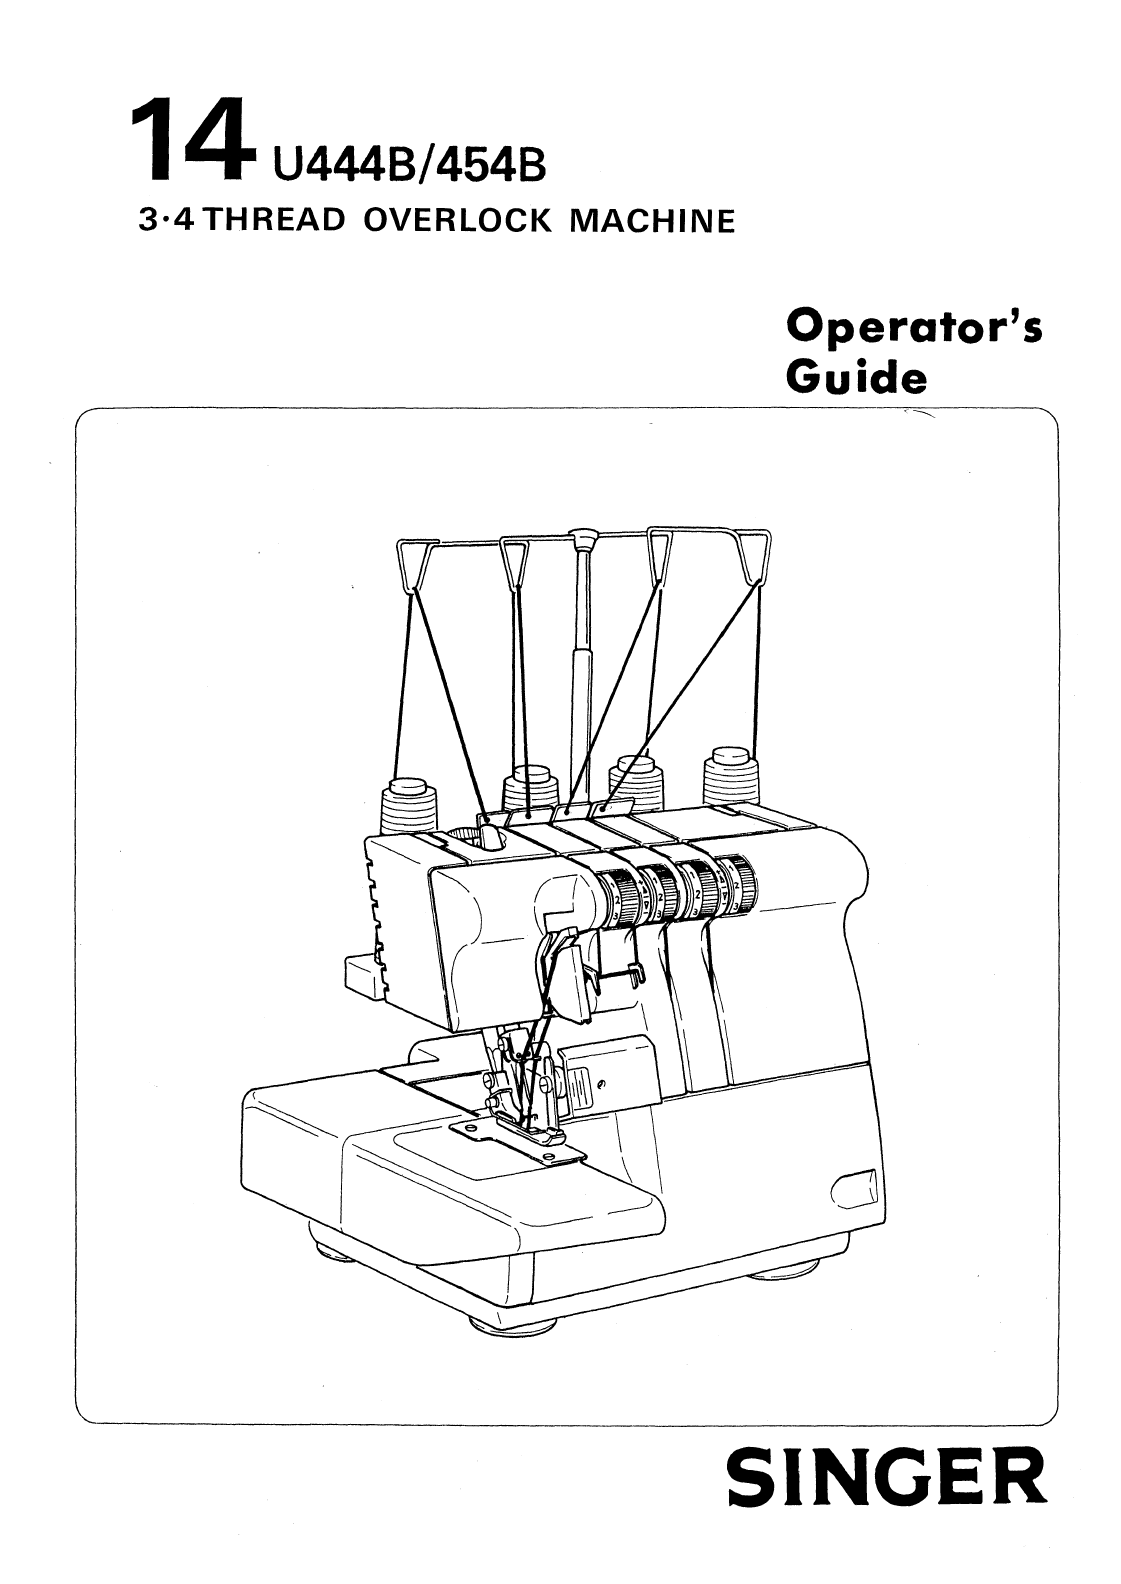 Singer Sewing Machine 14u444b User Guide